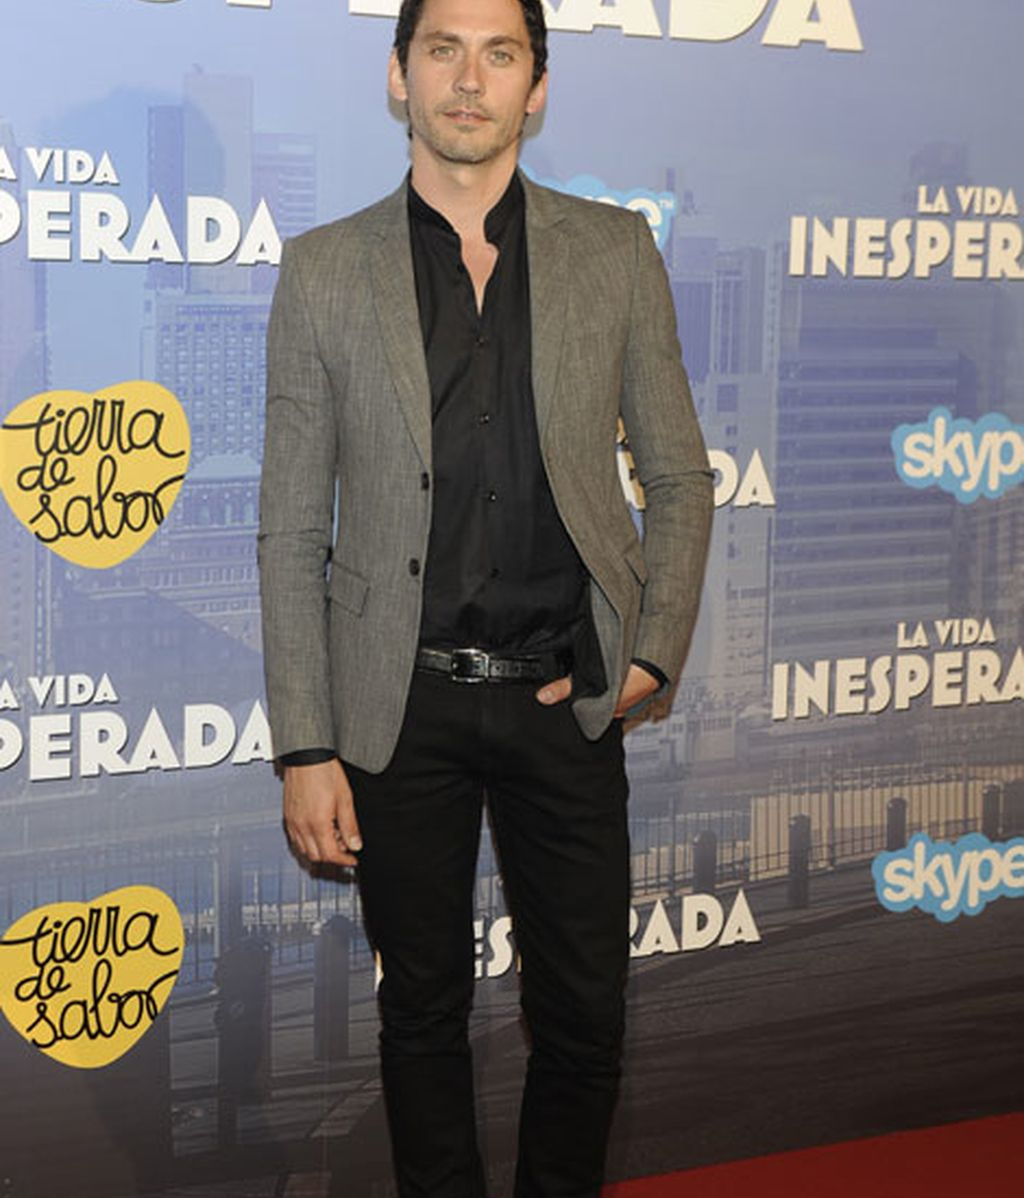 El actor y director Paco León